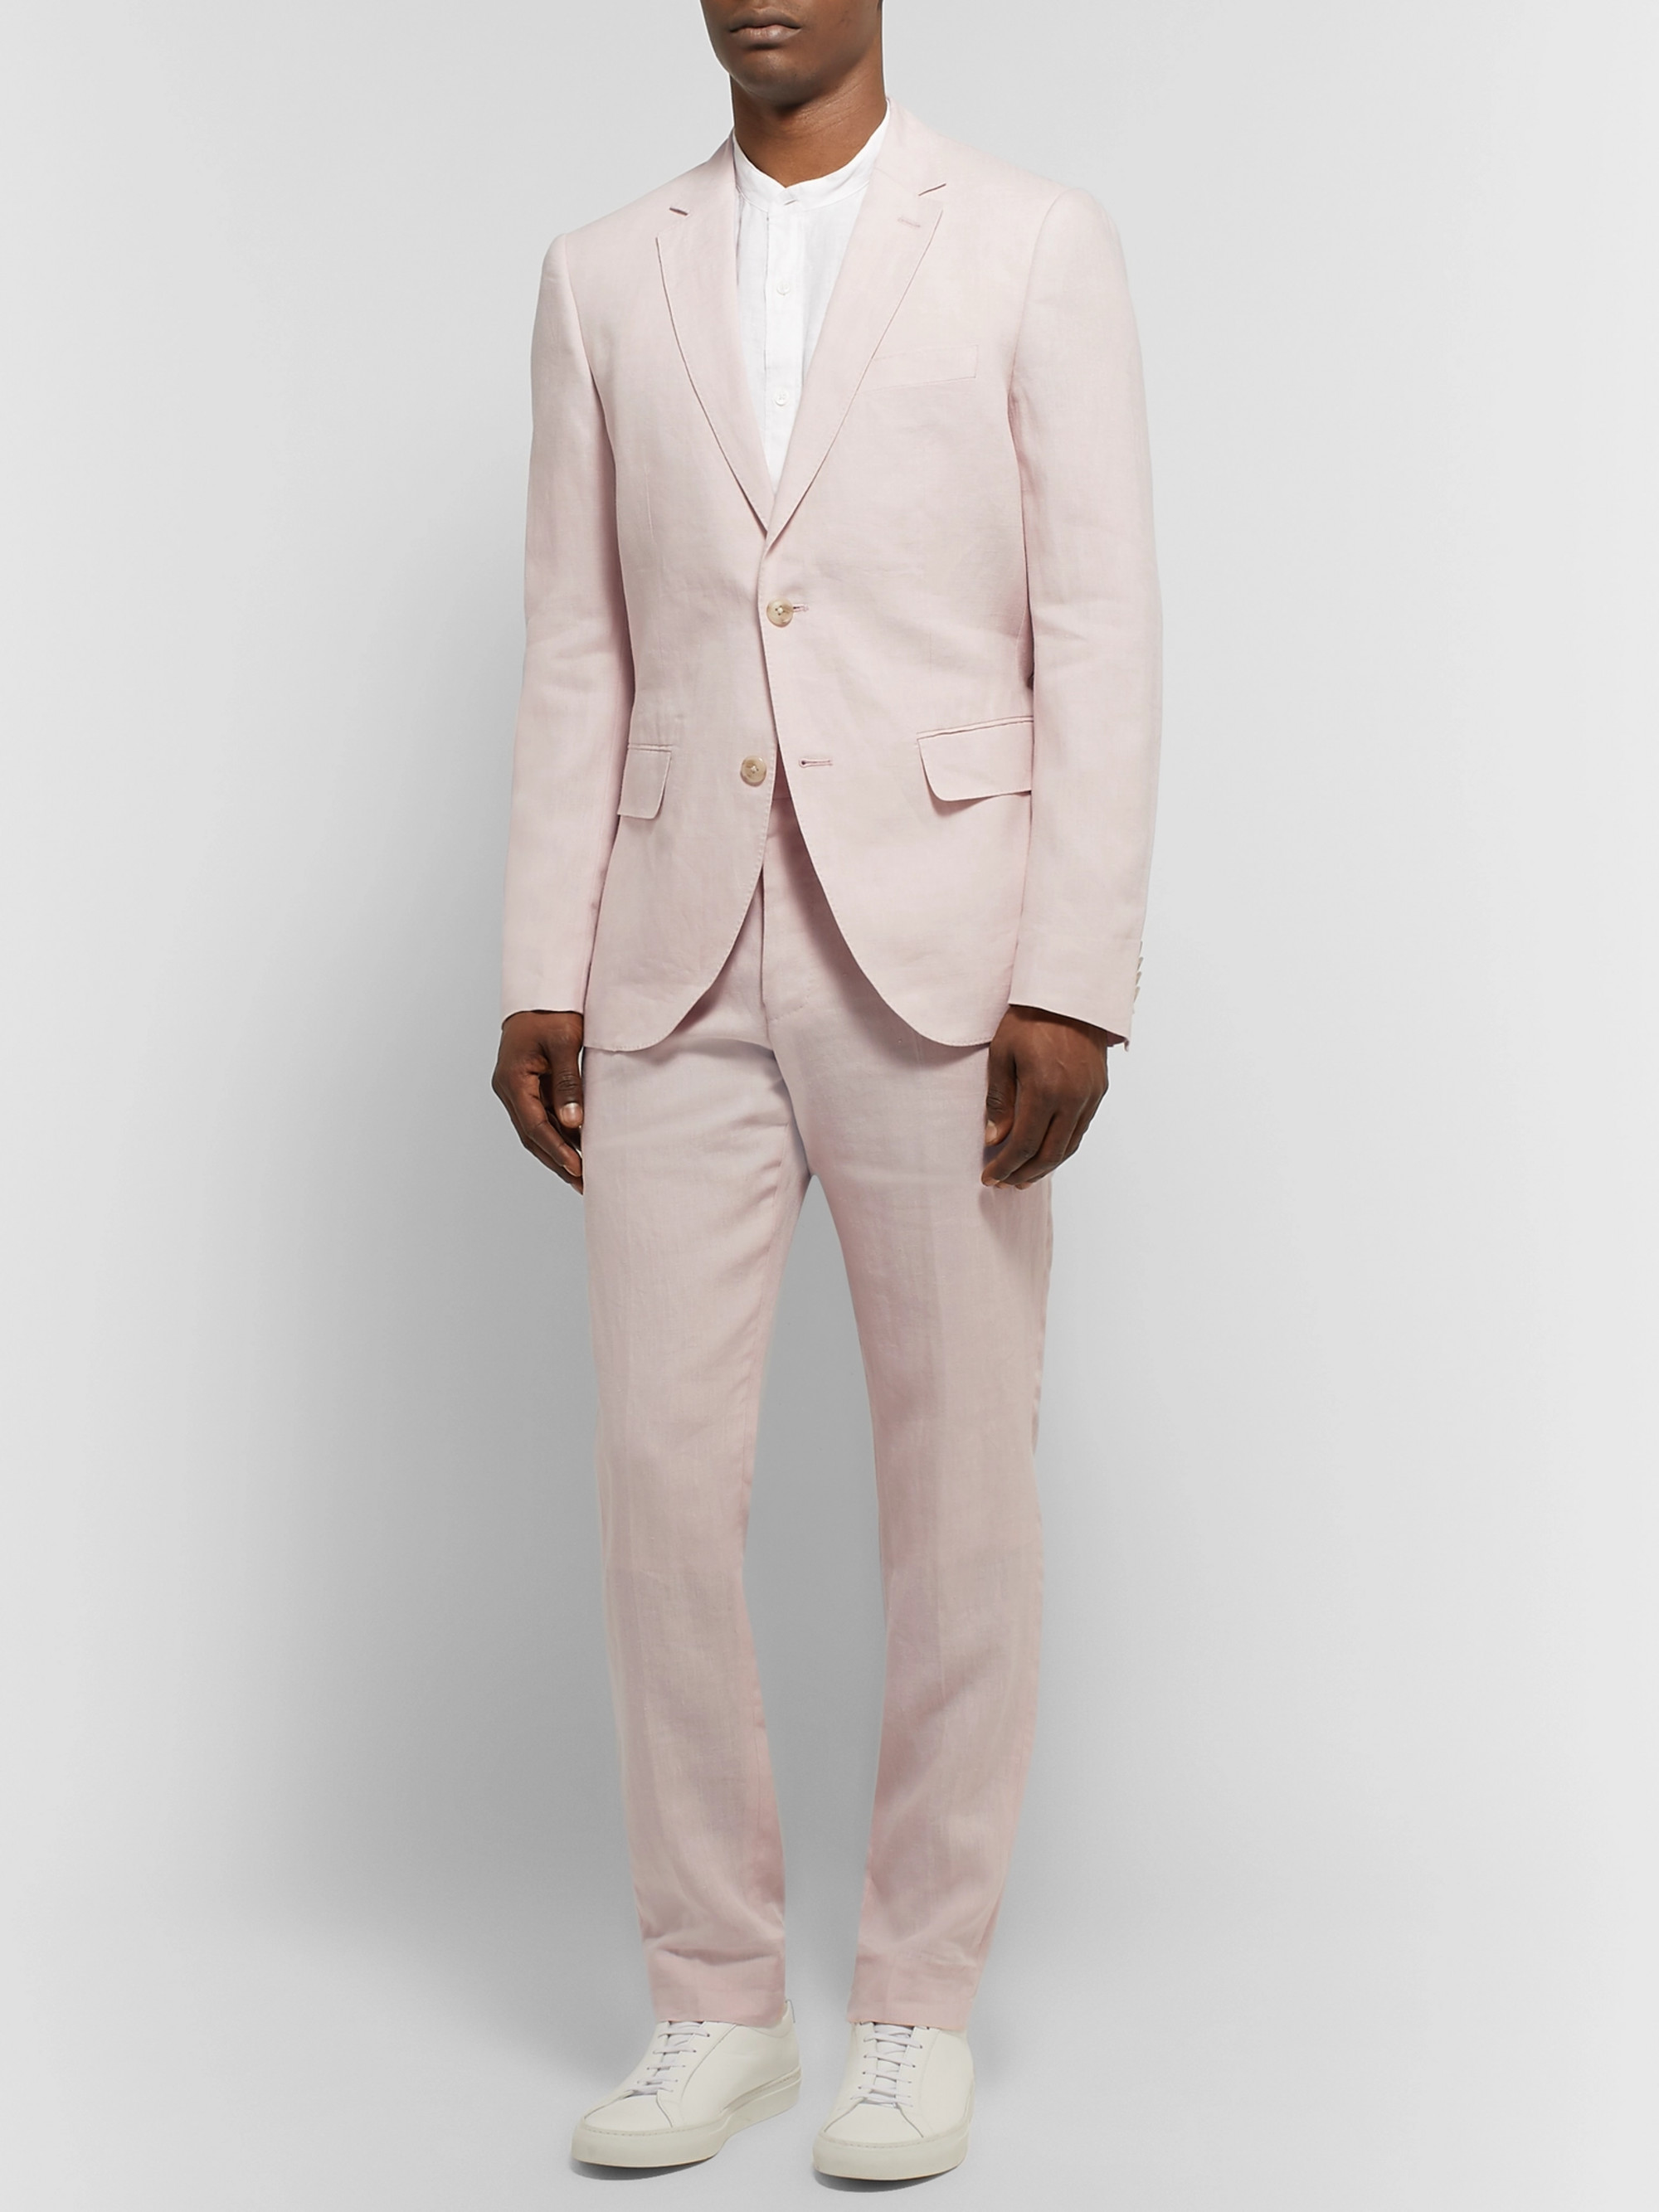 Club Monaco Grant Light-Pink Slim-Fit Linen Blazer